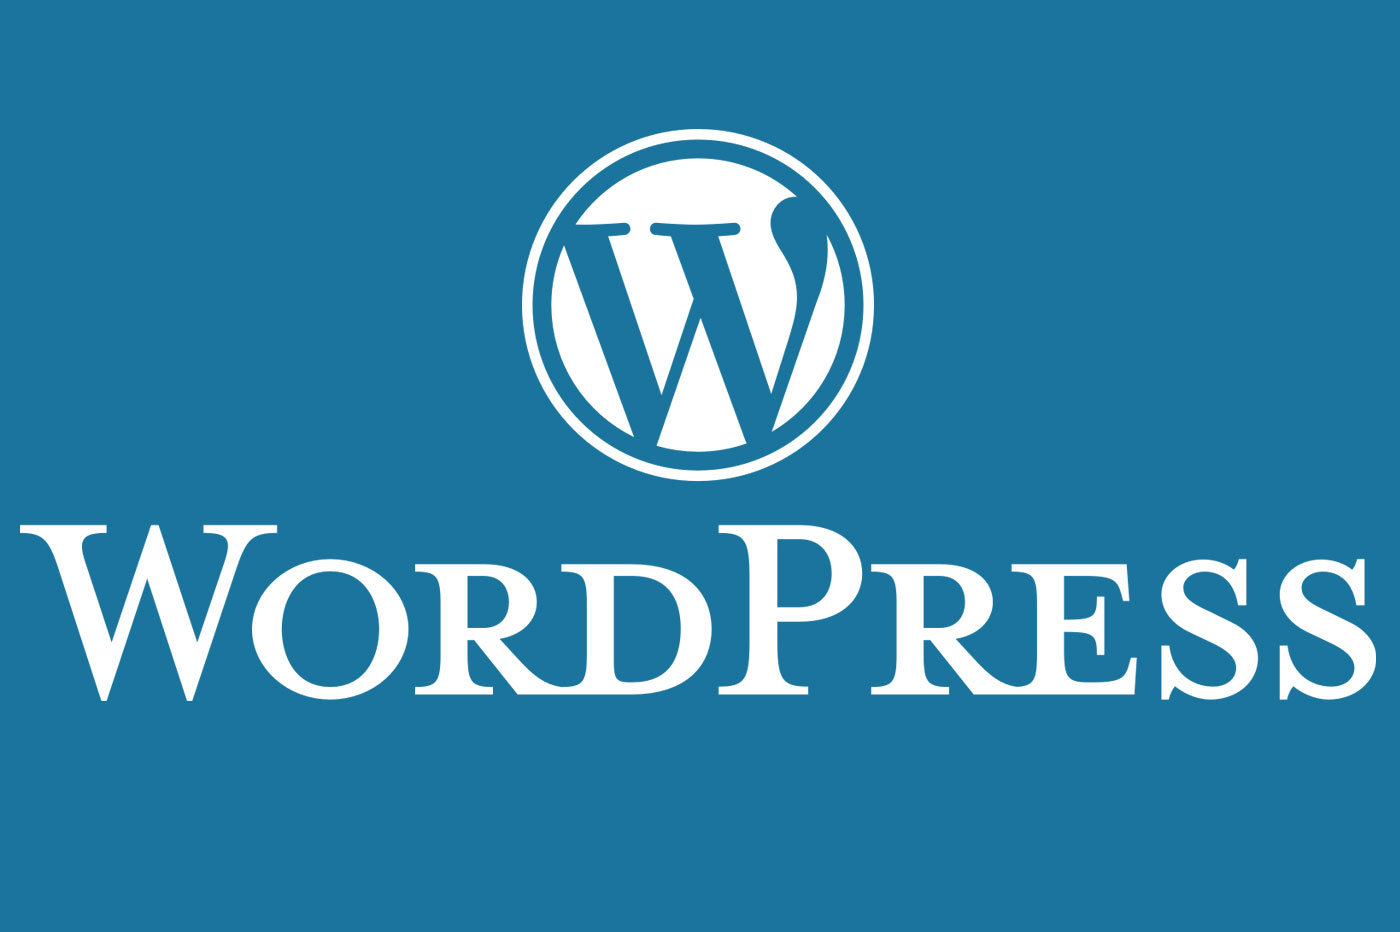 Wordpress : que propose WP ?